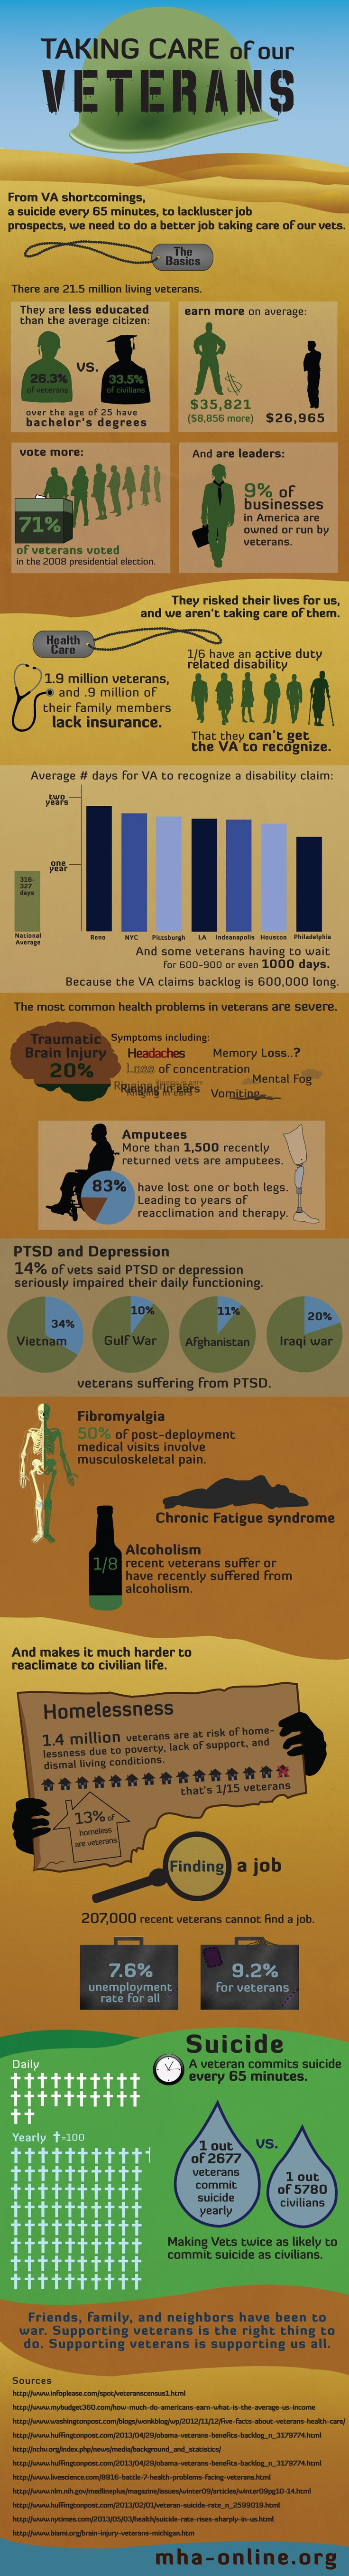 Taking Care of Our Veterans [SEO: Just about every stat you need to make the case that vets need -- and should have -- more resources, both from .gov and in the workplace. #SOT]